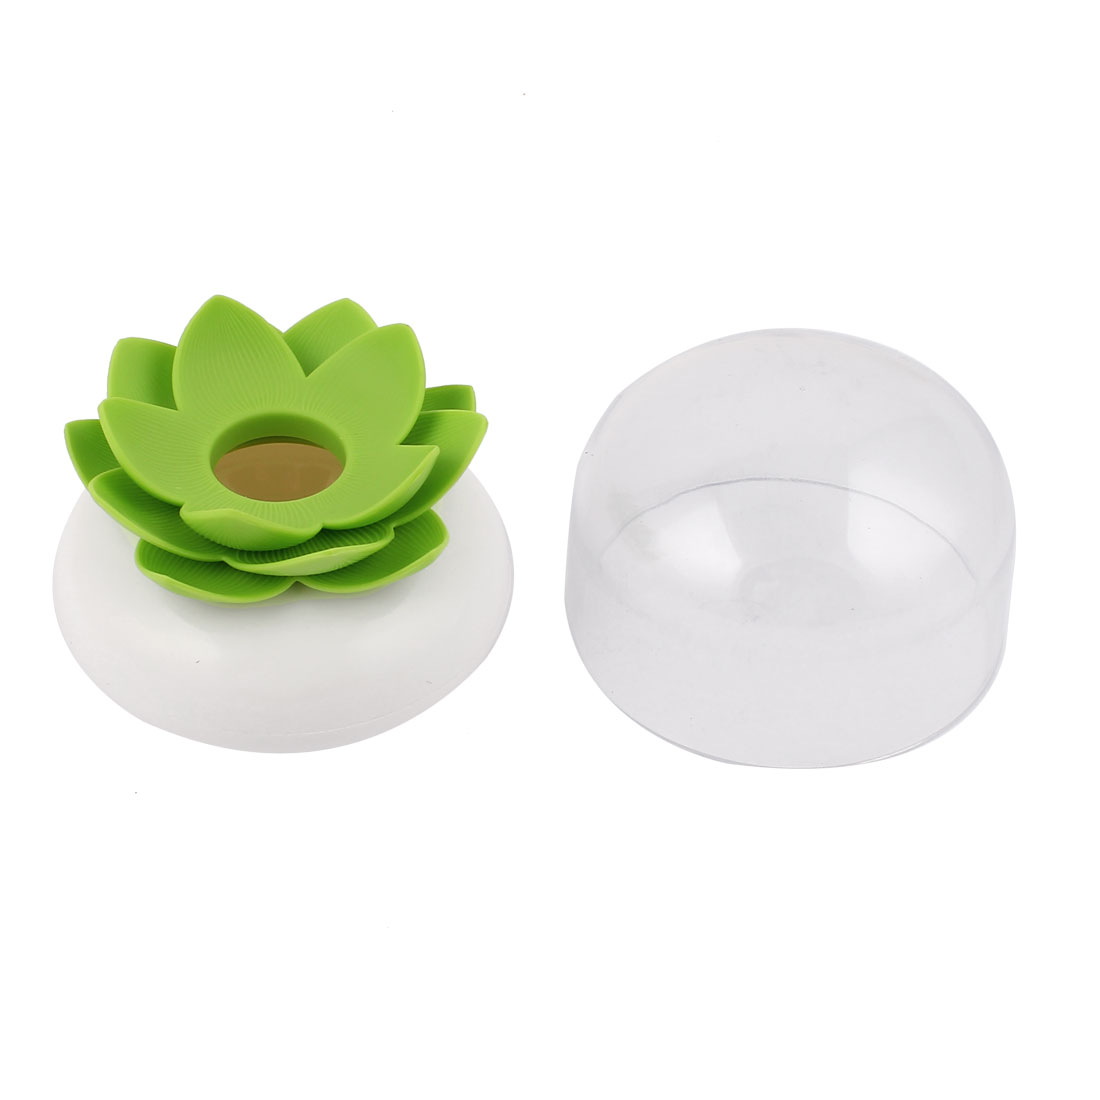 Household Green Lotus Flower Vase Cotton Bud Case Toothpick Holder Swab Storage Box White